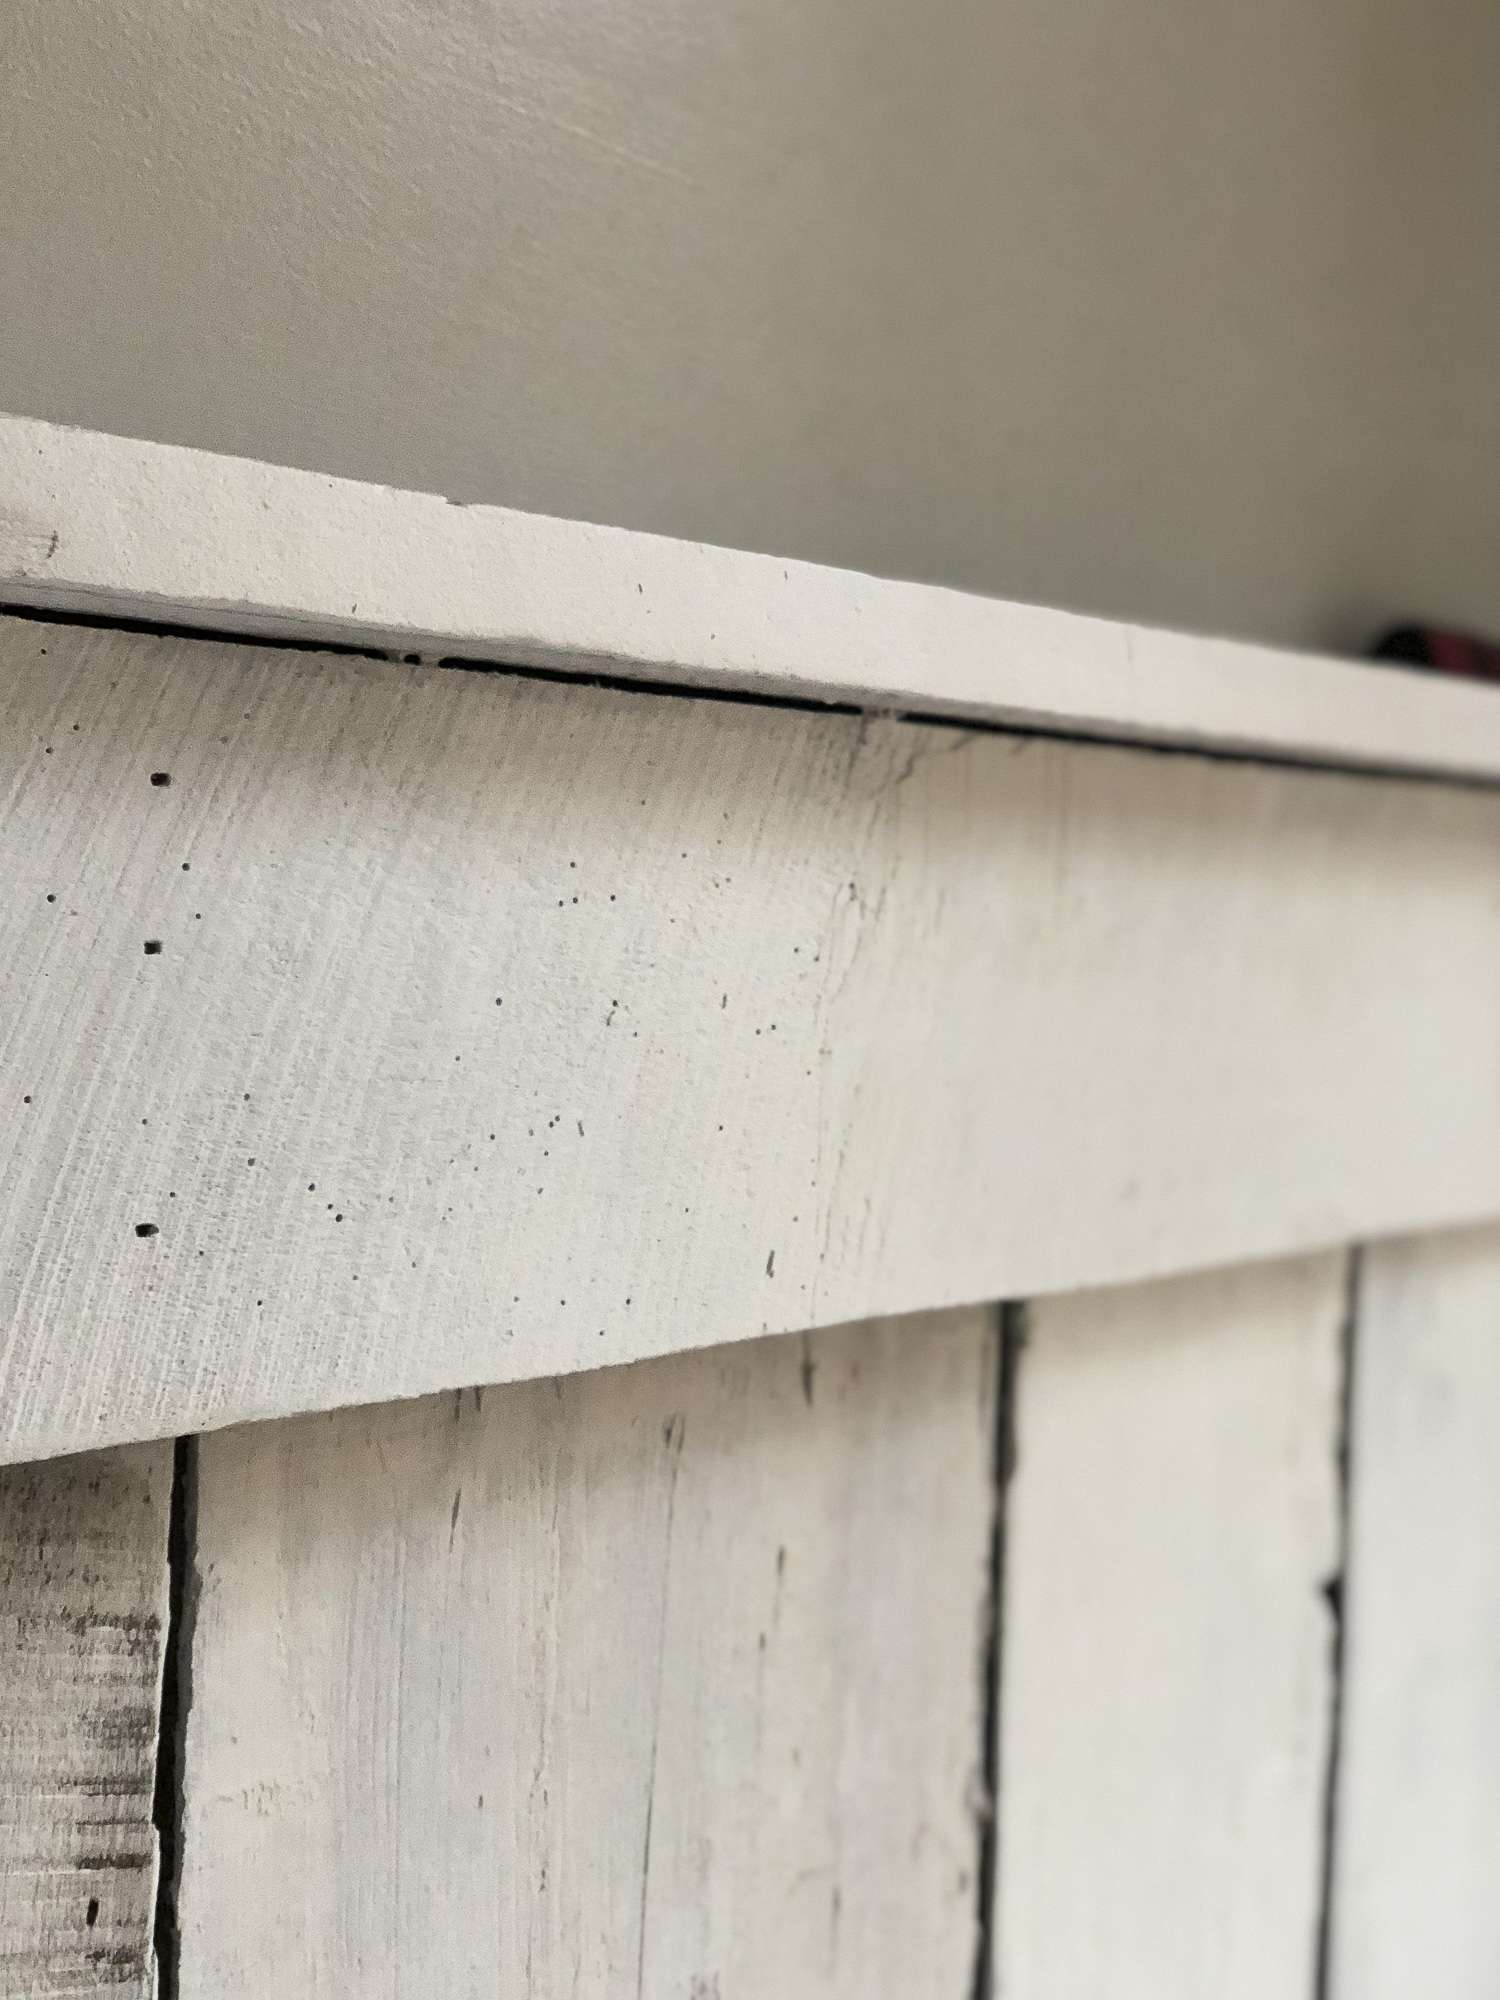 Come see how I took a rustic barnwood wall and transformed it into a more modern accent in our basement remodel for less than $40! #barnwoodwall #diyproject #basementremodel